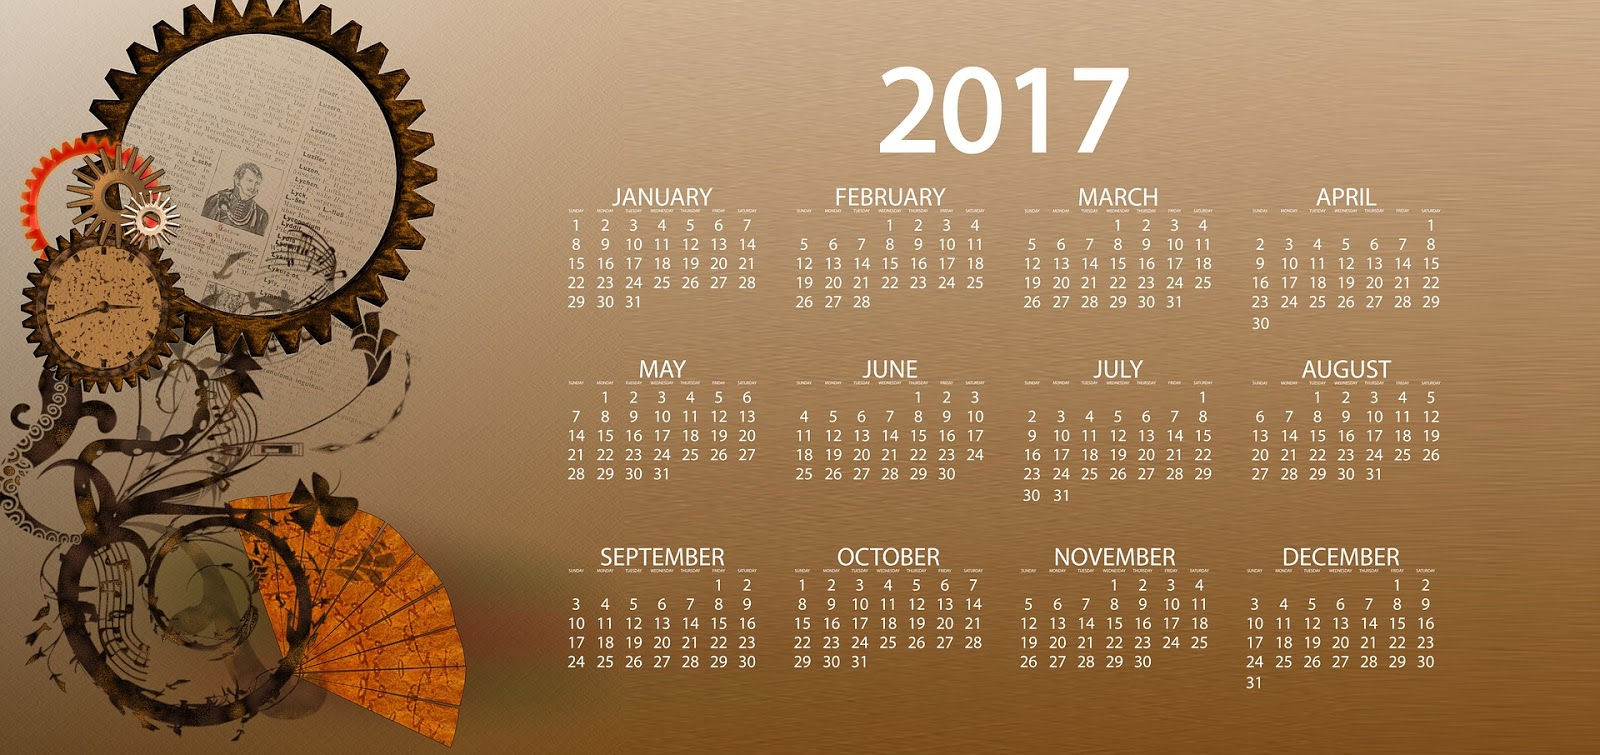 Wonderful Amazing Happy New Year 2017 Pictures, Images, Posters, Wallpapers  For Whatsapp, Facebook, Twitter   1